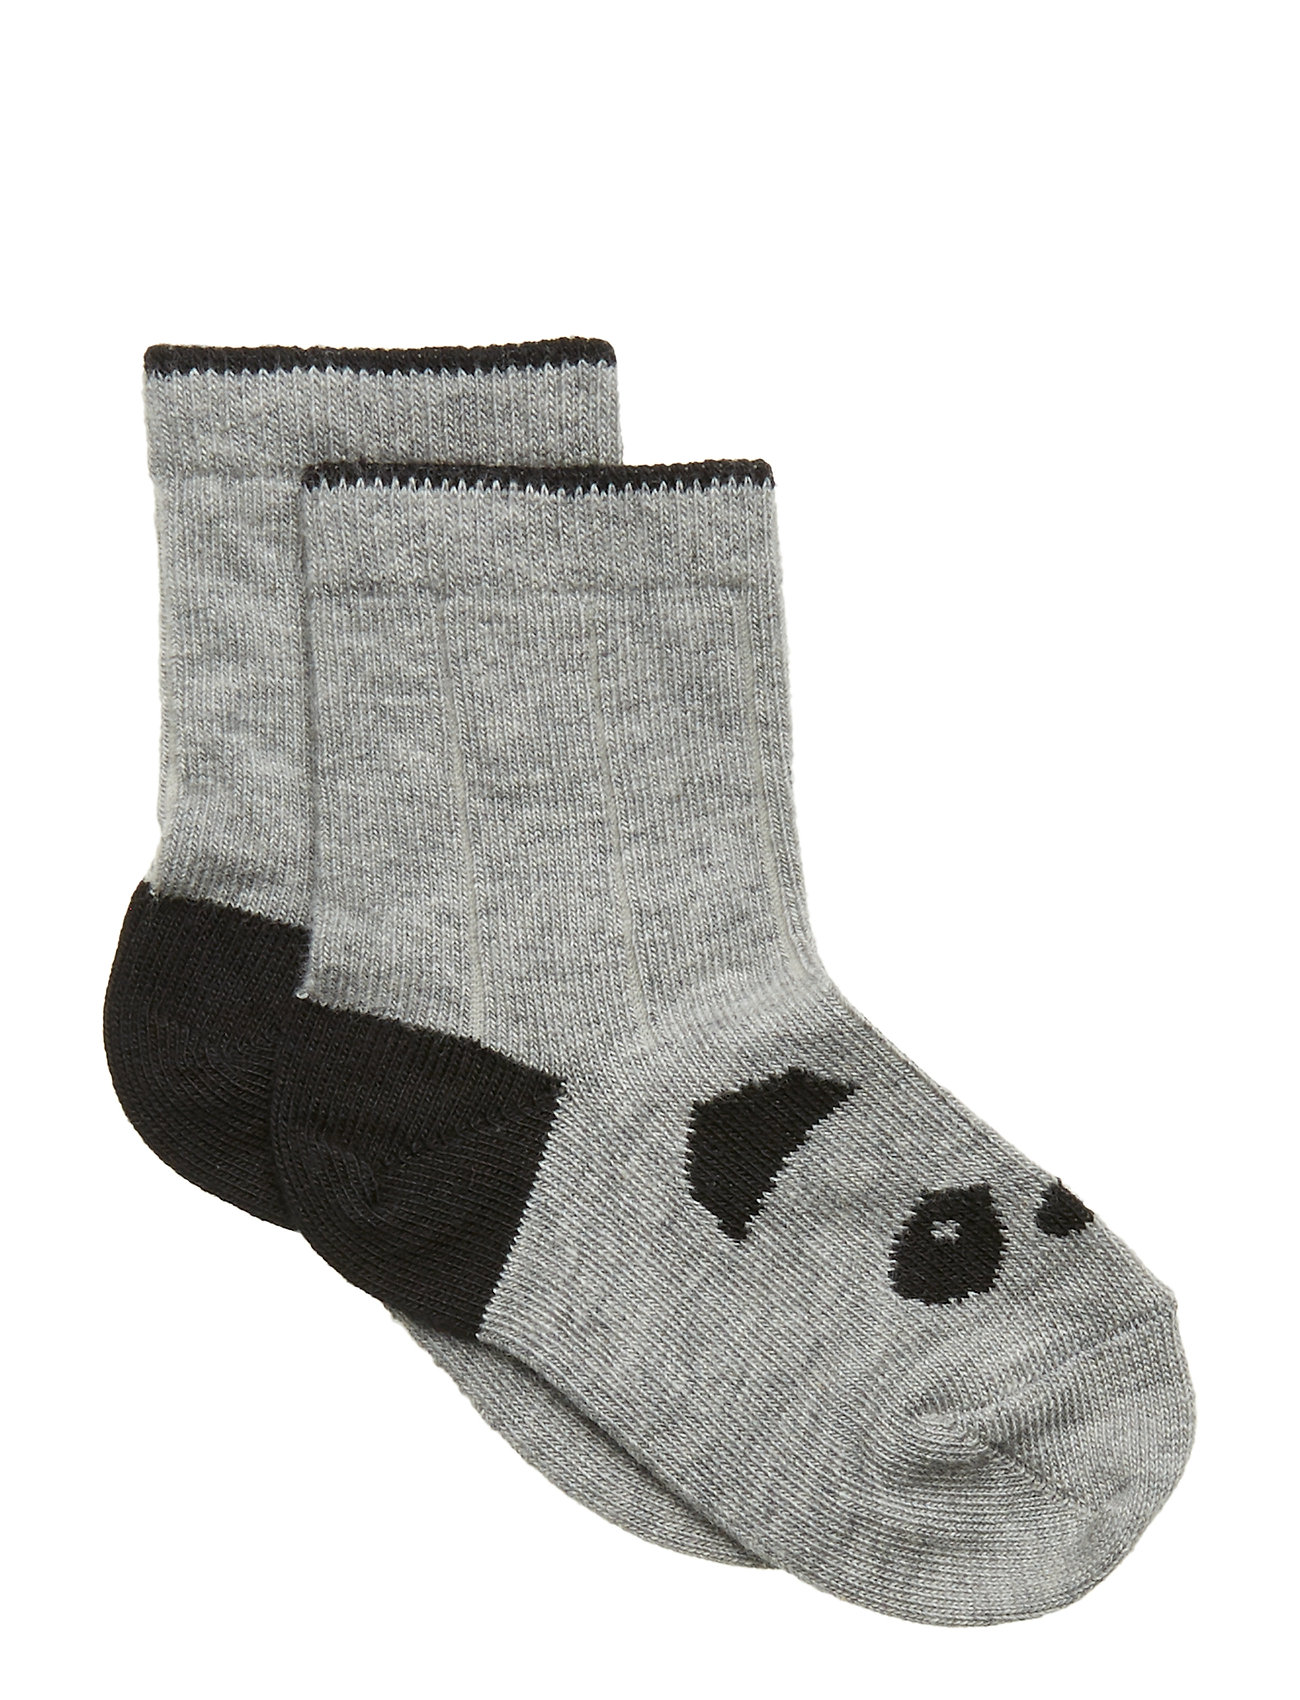 Liewood Silas cotton socks - PANDA GREY MELANGE